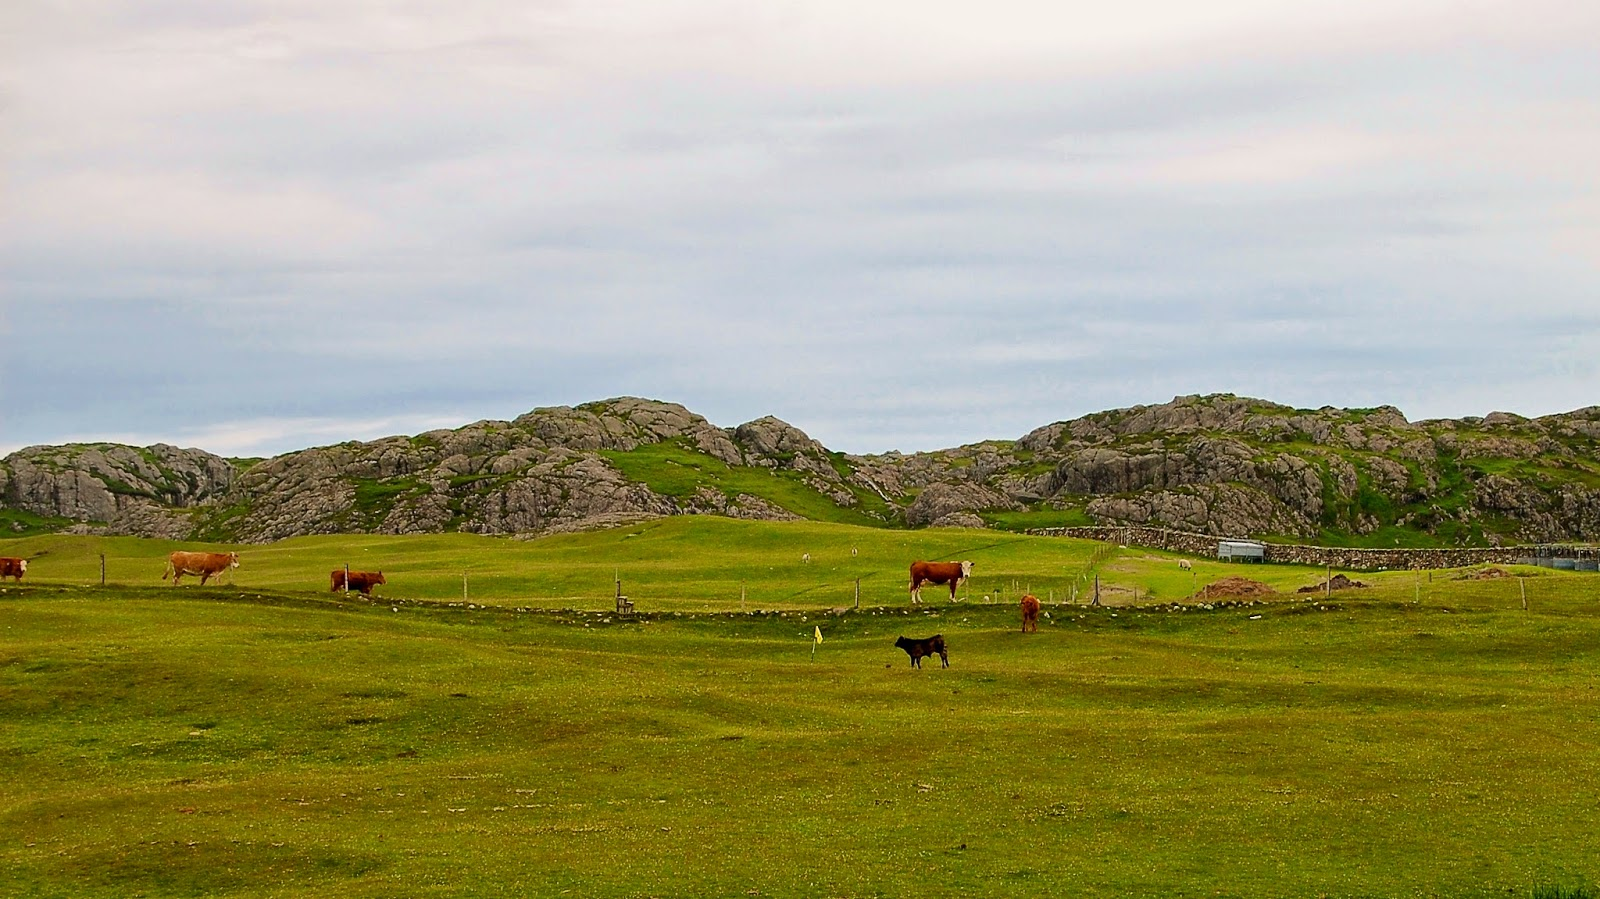 Cows graze on the greens, Isle of Iona golf course